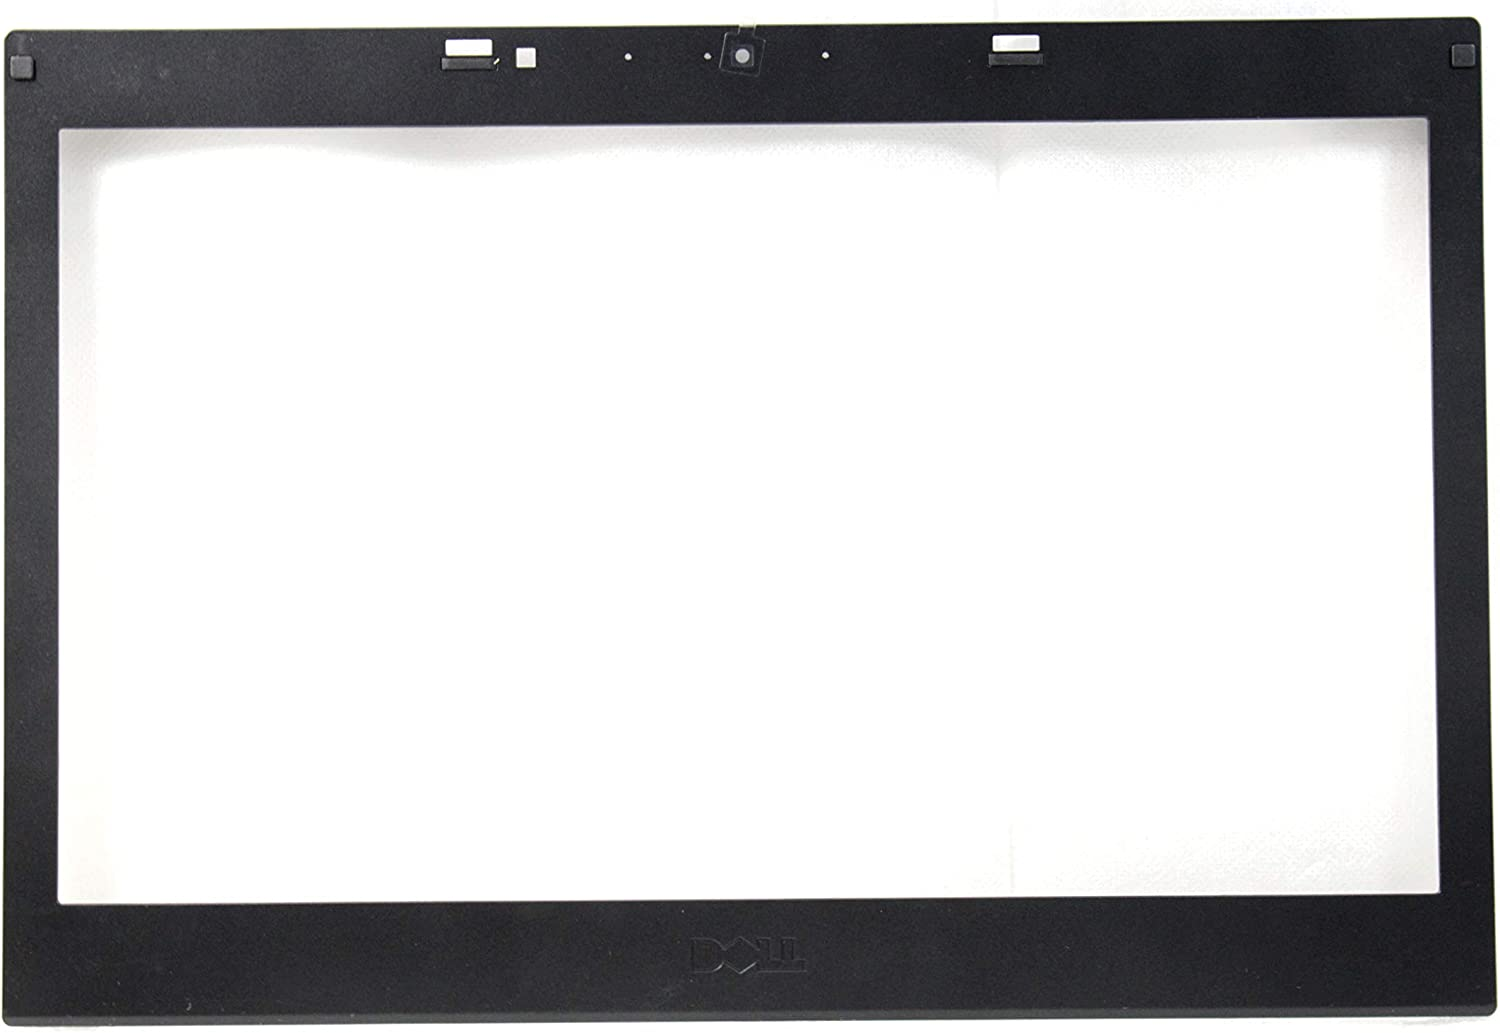 "WN73T - New - Dell Precision M4500 15.6"" LCD Front Trim Cover Bezel Plastic - WITH Camera Port - WN73T"